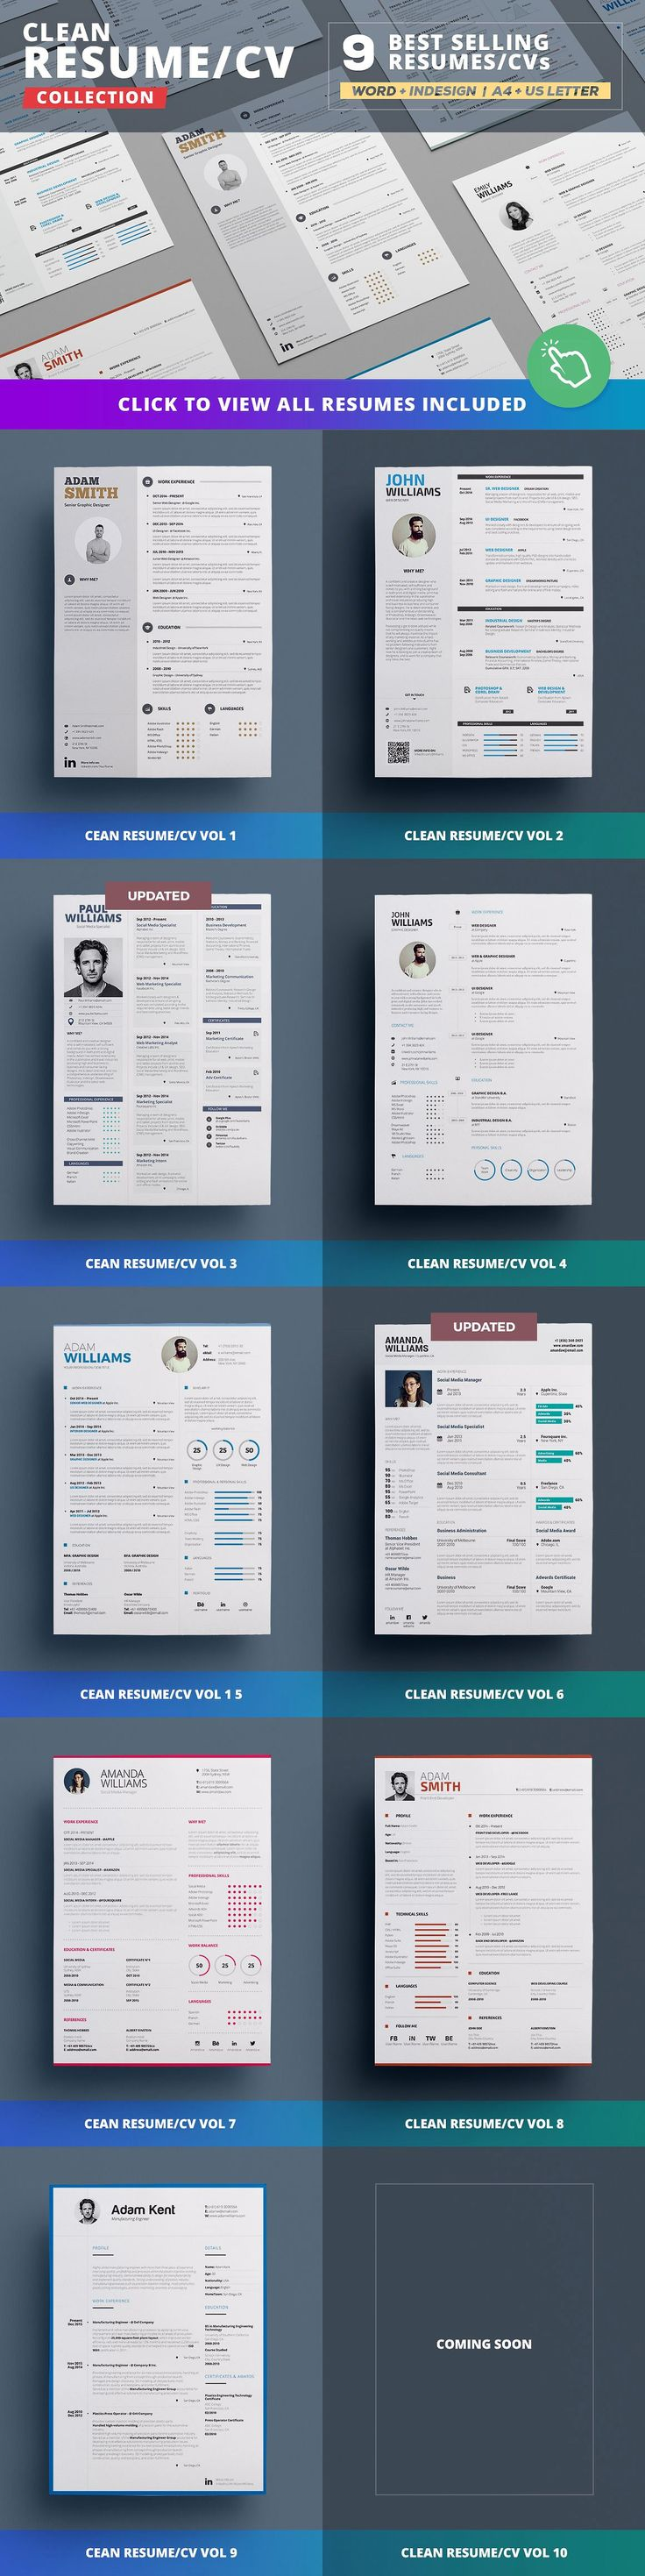 google resume template%0A how to do resume in word